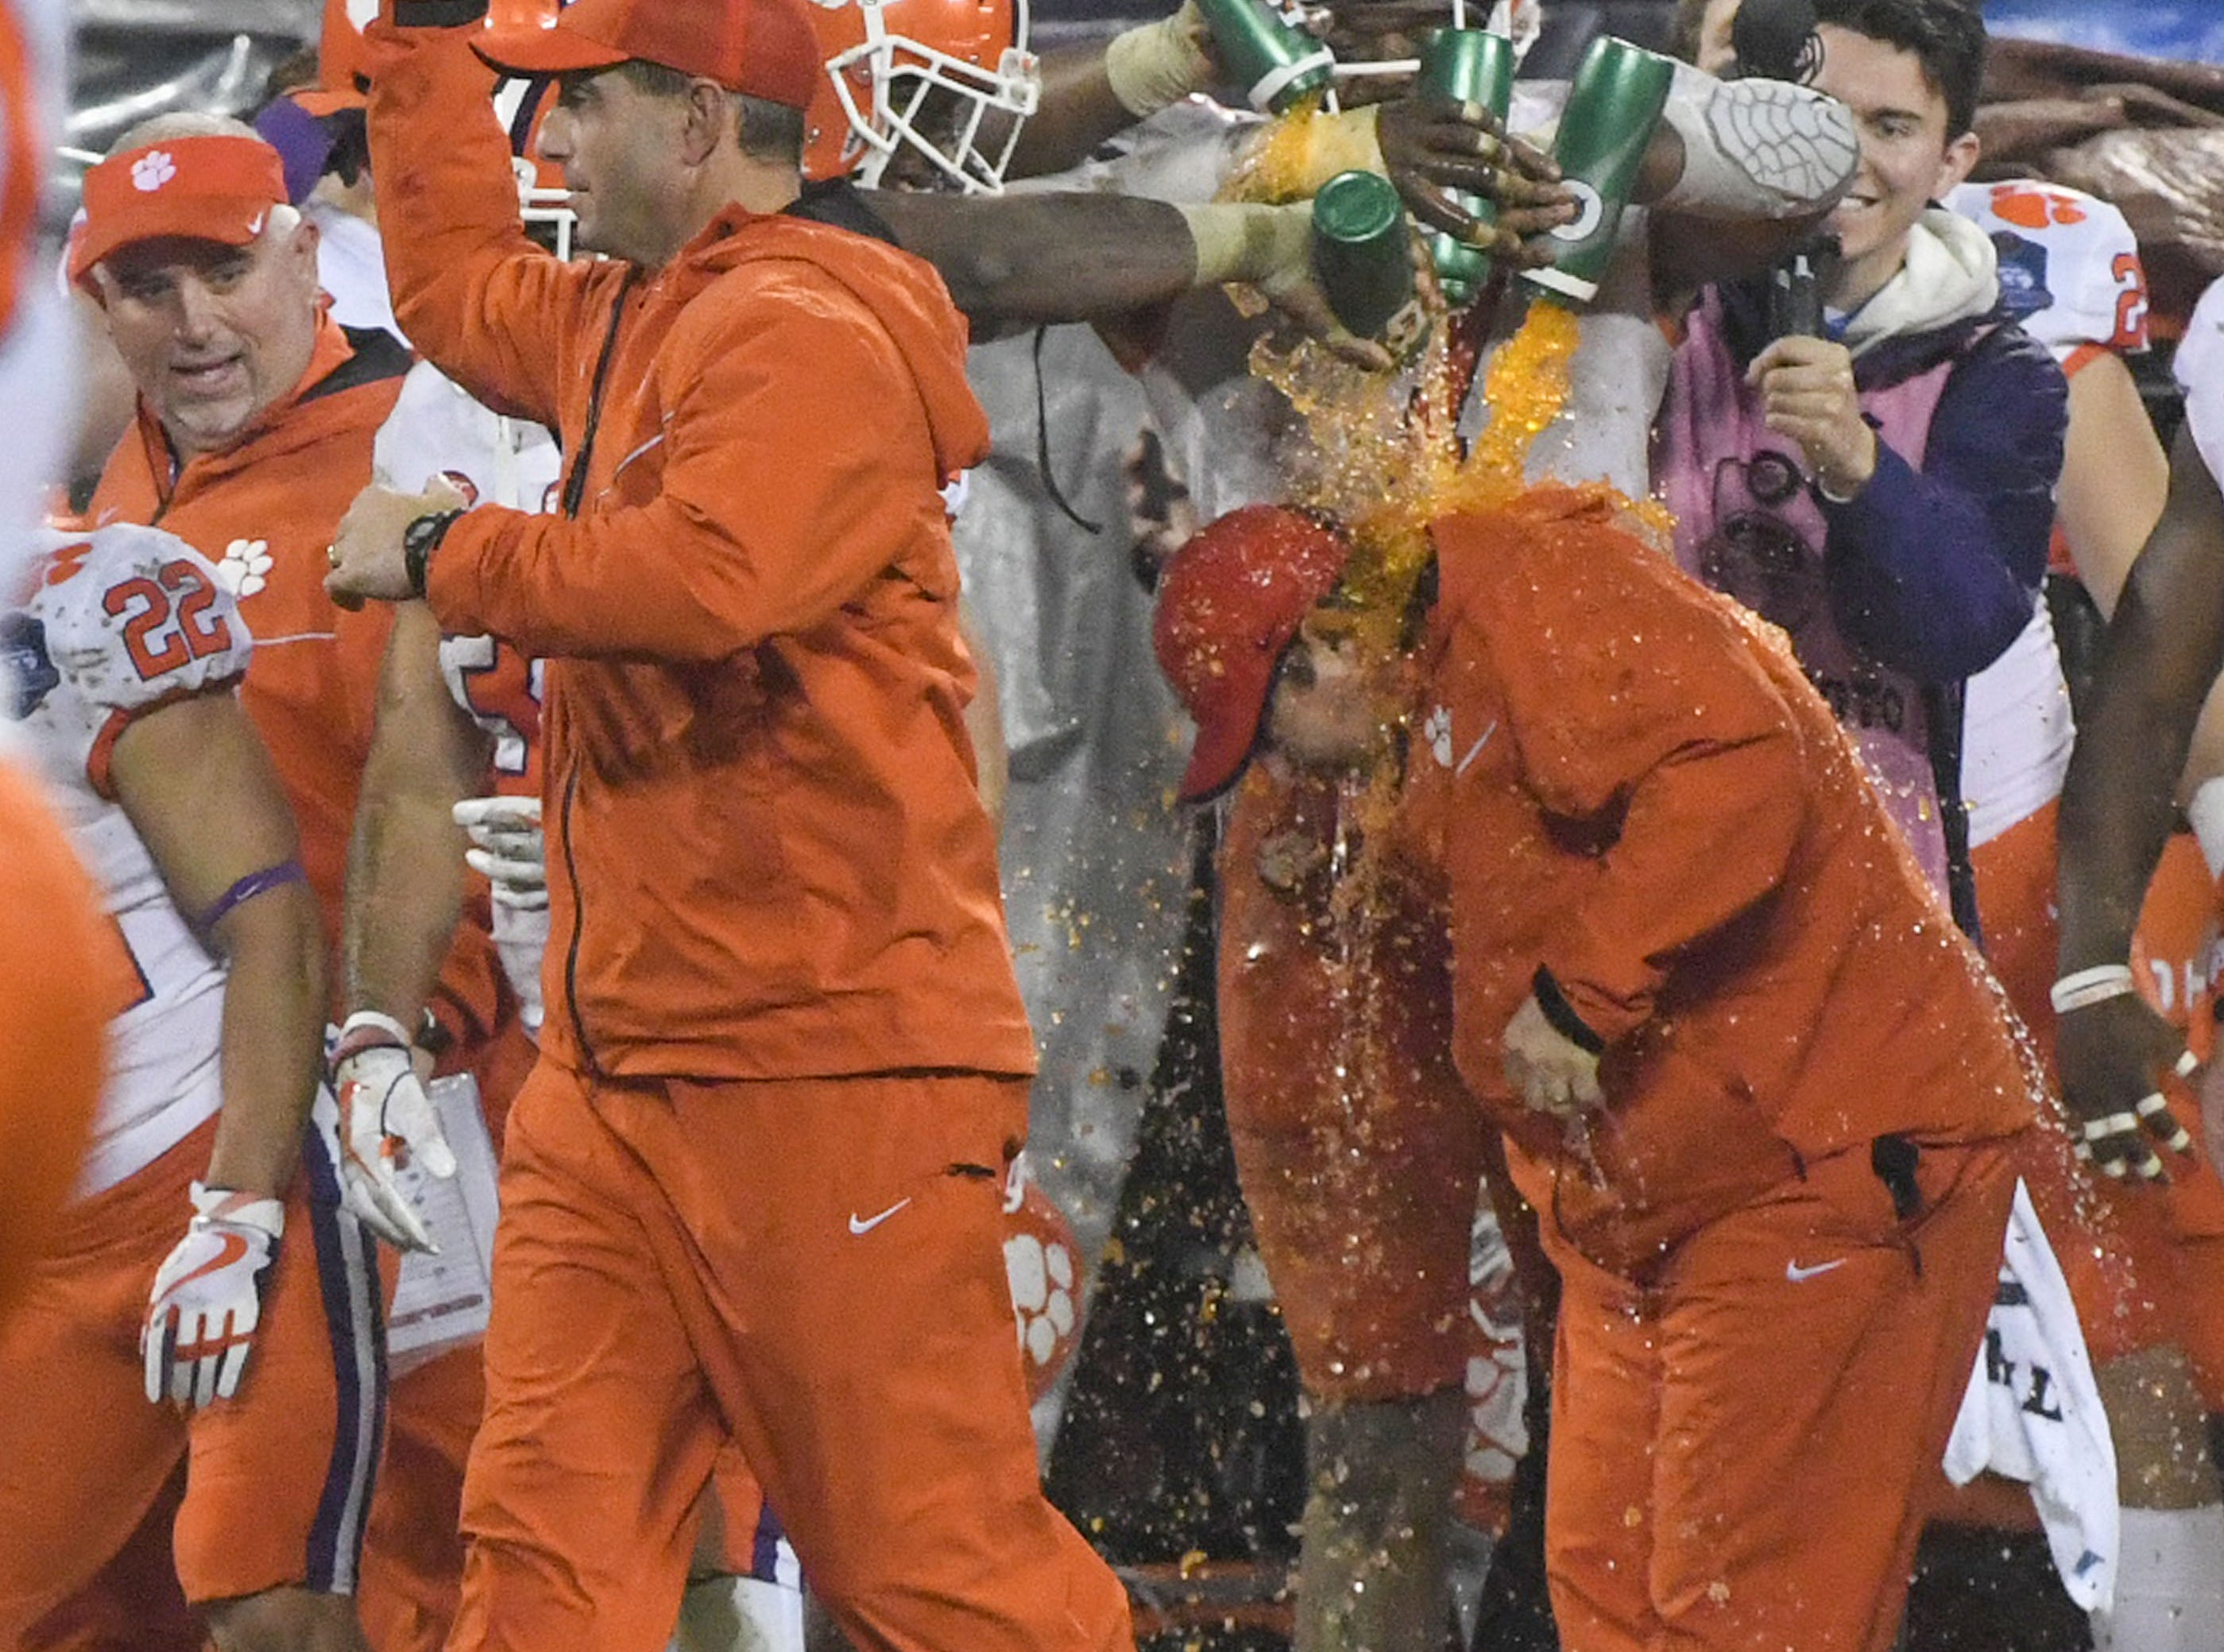 Clemson Head Coach Dabo Swinney walks by players dousing a coach with Gatorade during the fourth quarter in Memorial Stadium on Saturday, November 3, 2018.